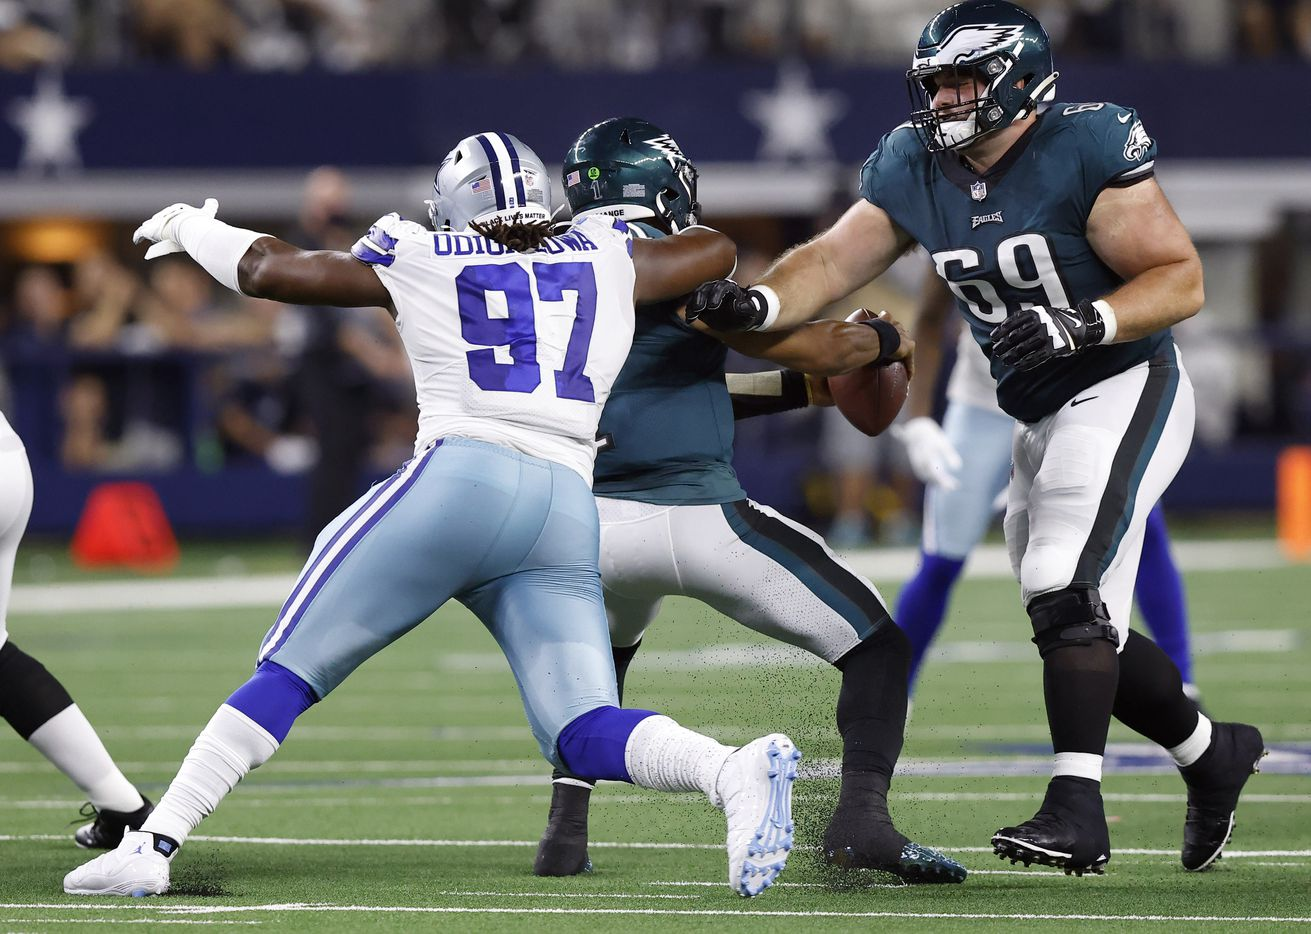 Dallas Cowboys defensive tackle Osa Odighizuwa (97) gets the sack of Philadelphia Eagles quarterback Jalen Hurts (1) after getting around center Landon Dickerson (69) during the second quarter at AT&T Stadium in Arlington, Monday, September 27, 2021. (Tom Fox/The Dallas Morning News)